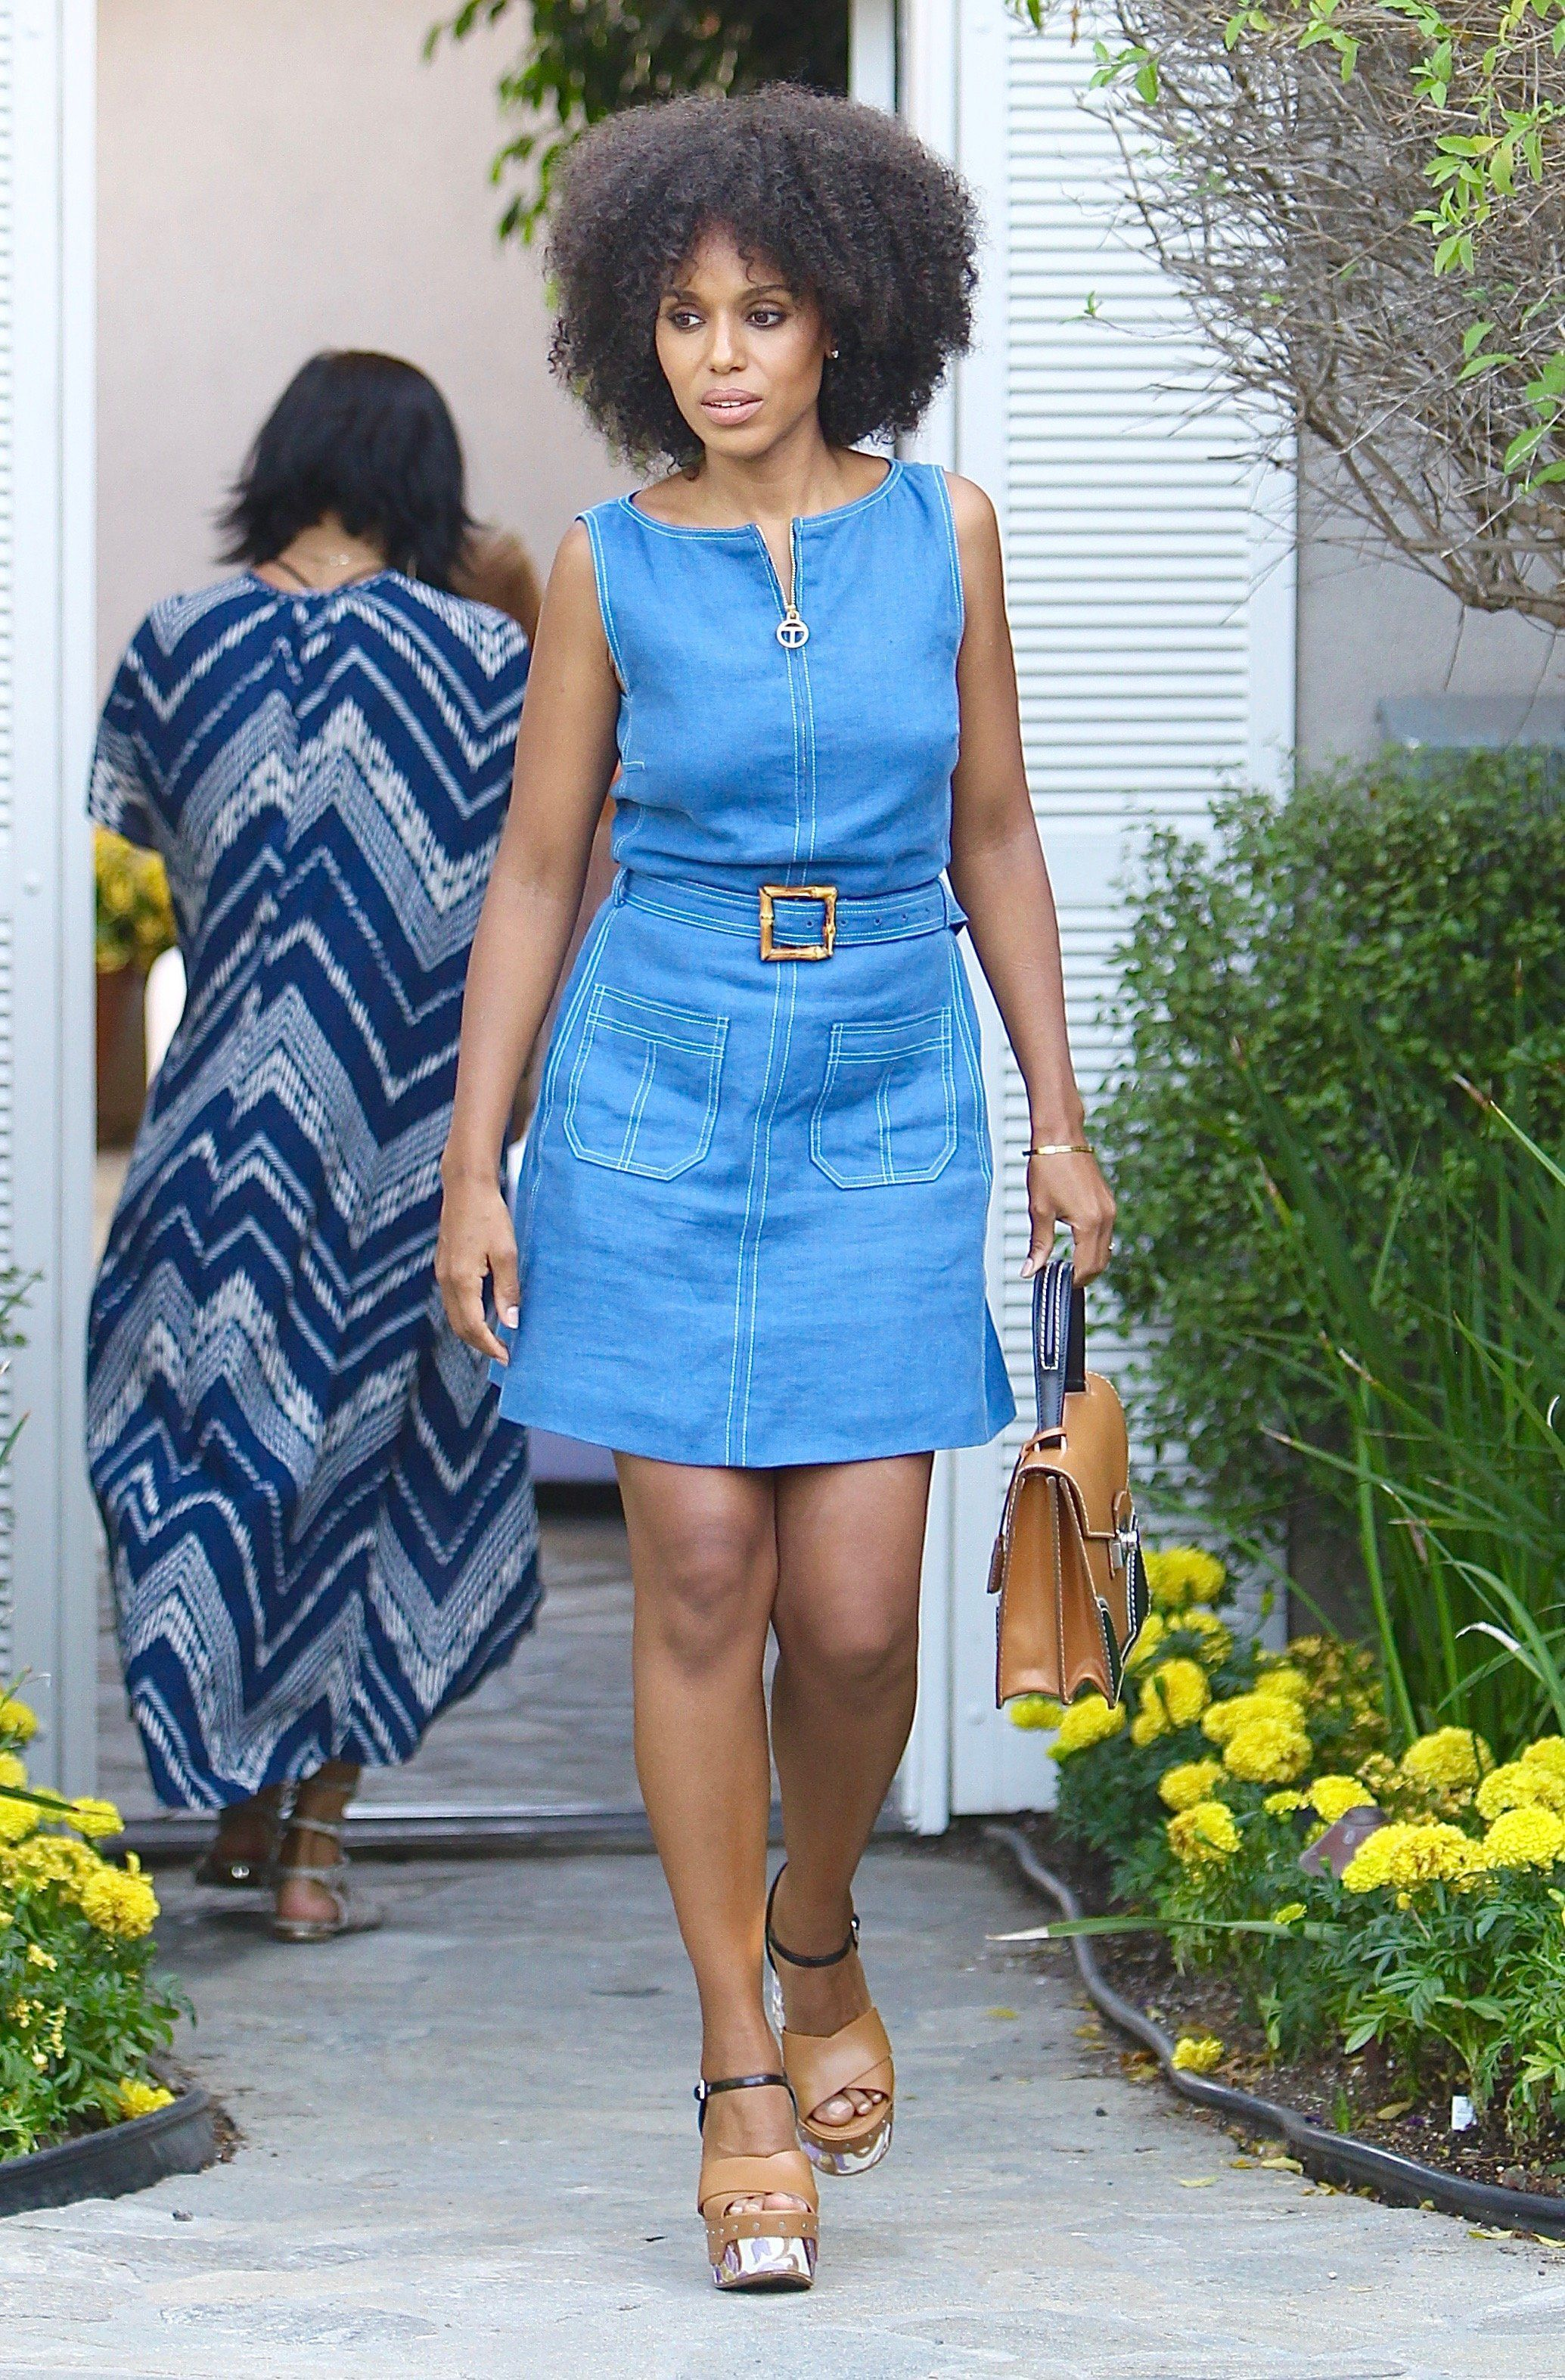 Kerry Washington attends Jennifer Klein's Day of Indulgence Party in Brentwood, California.